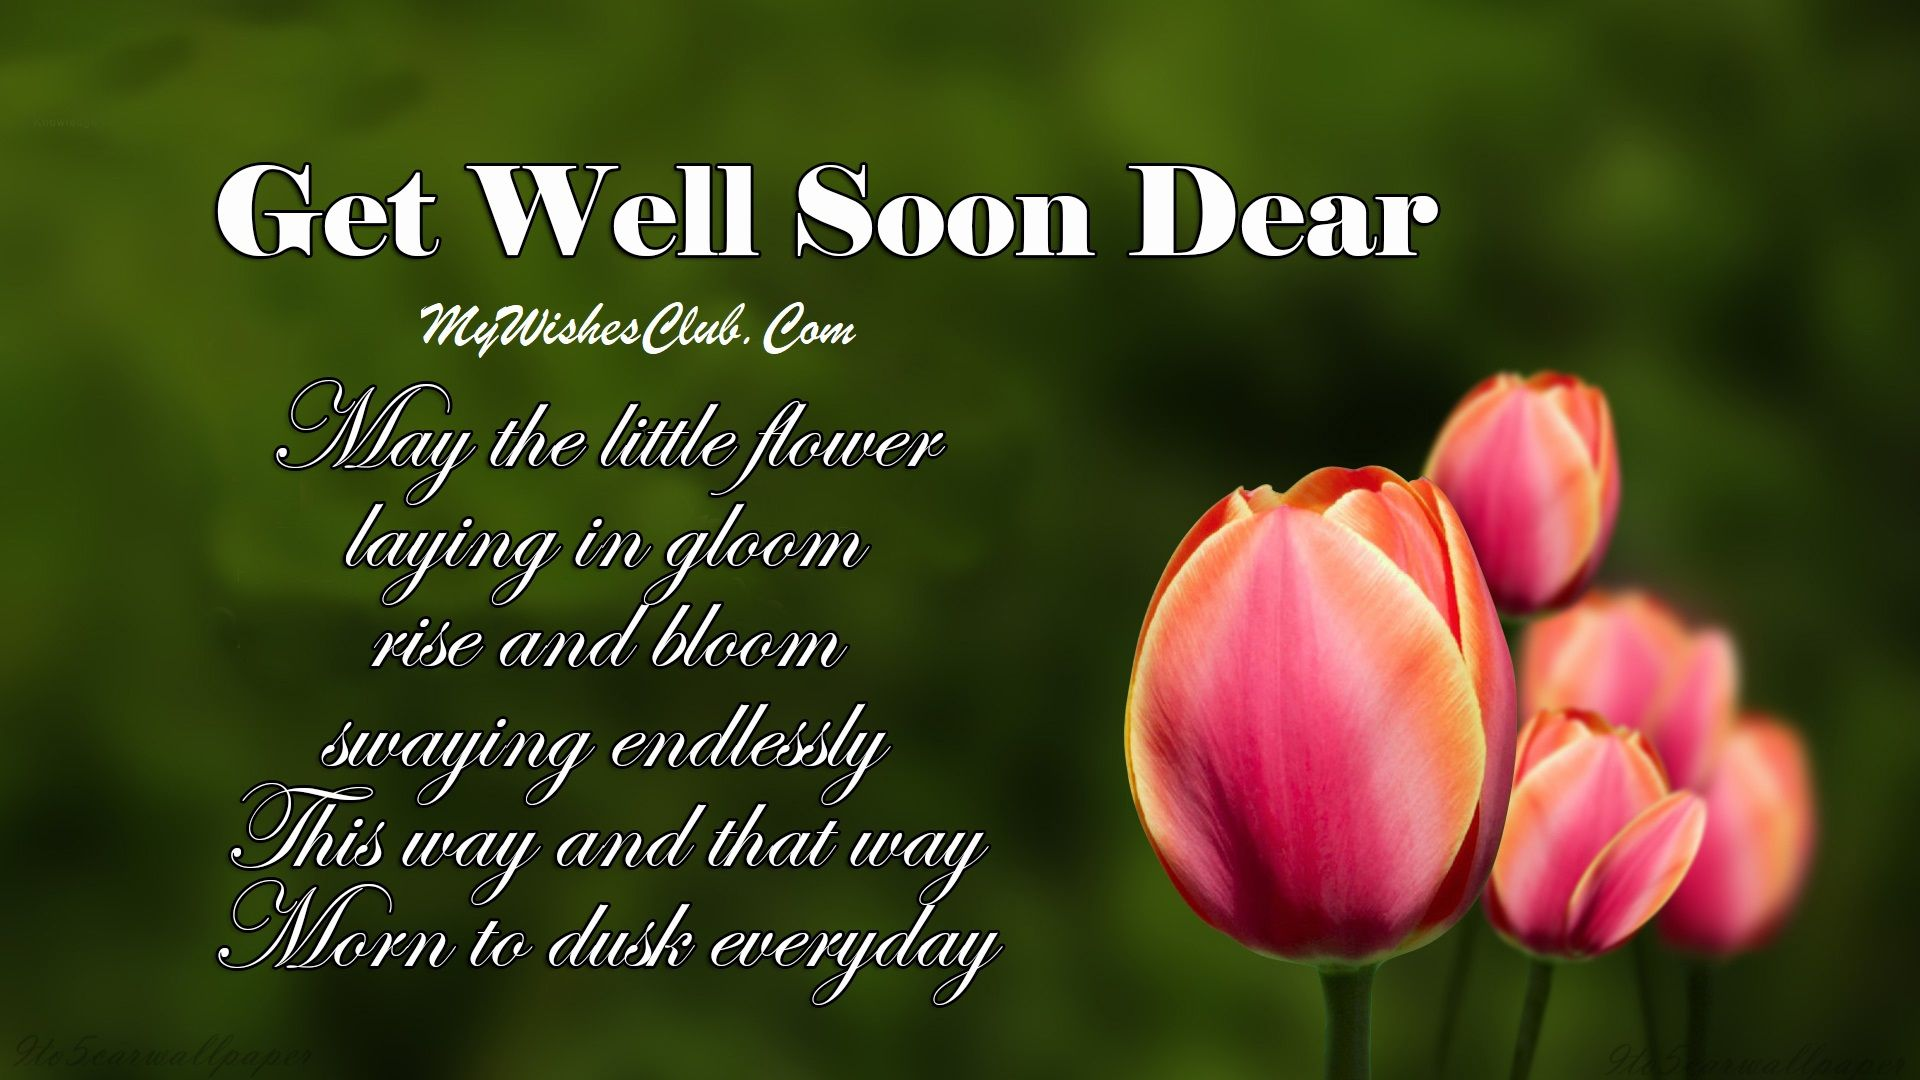 Get Well Soon Messages For Friend Get Well Soon Wishes For Friend My Wishes Club Get Well Soon Quotes Wishes For Friends Get Well Soon Messages